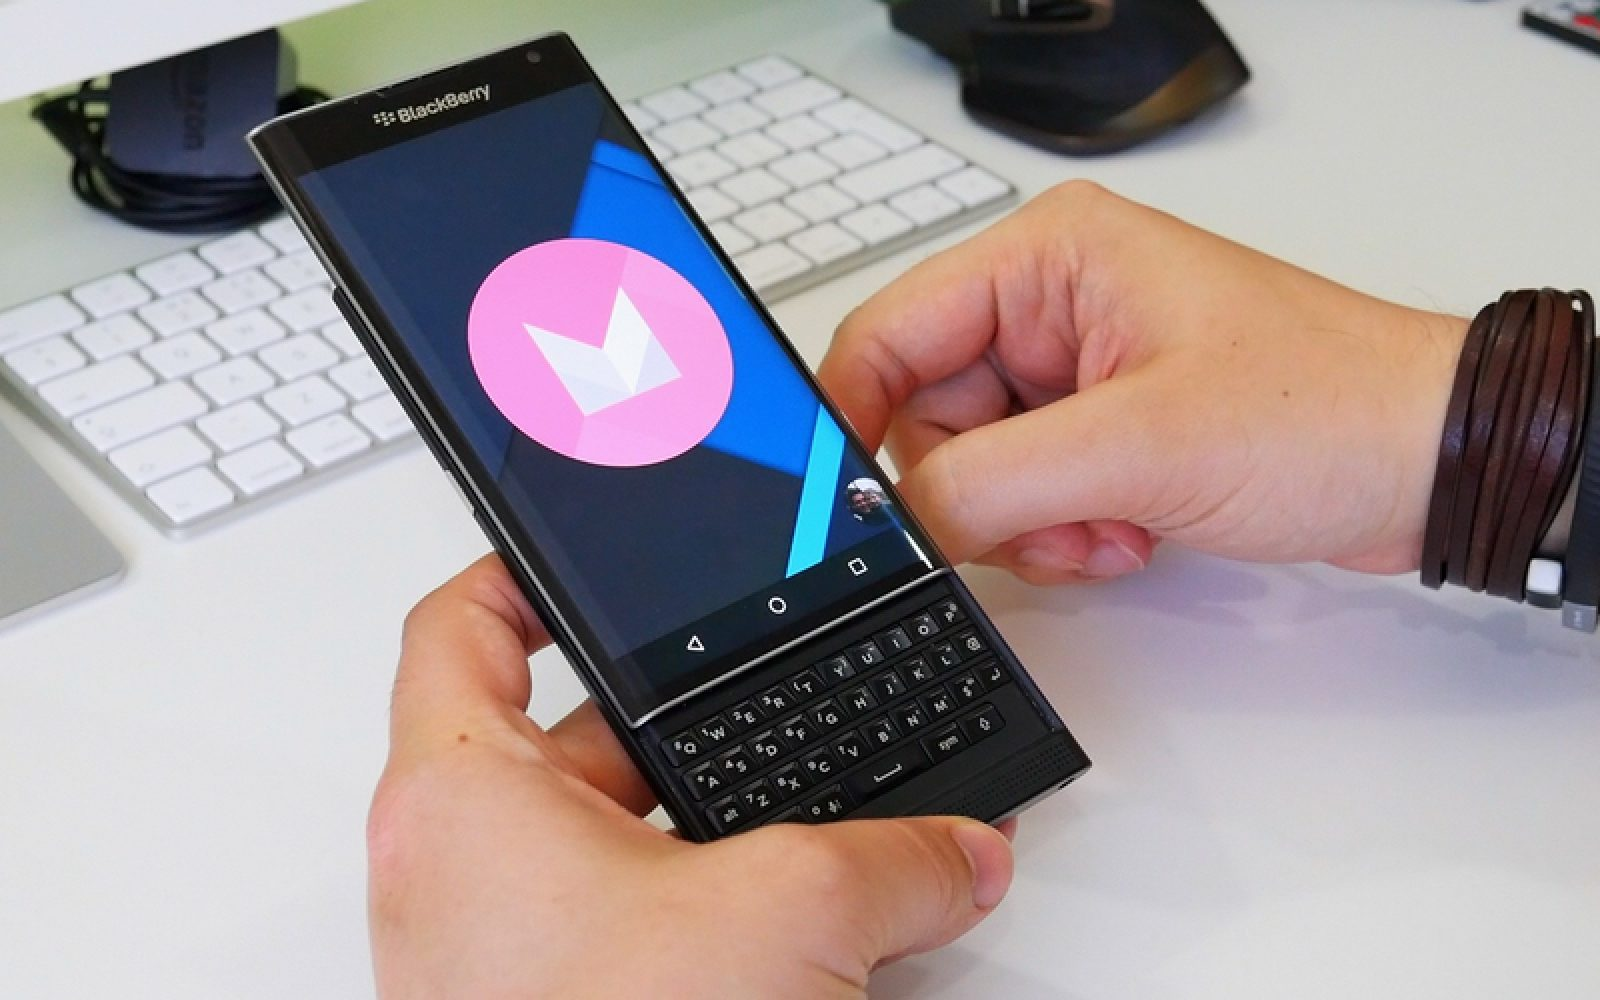 Hands-on: Everything new with BlackBerry PRIV running Android